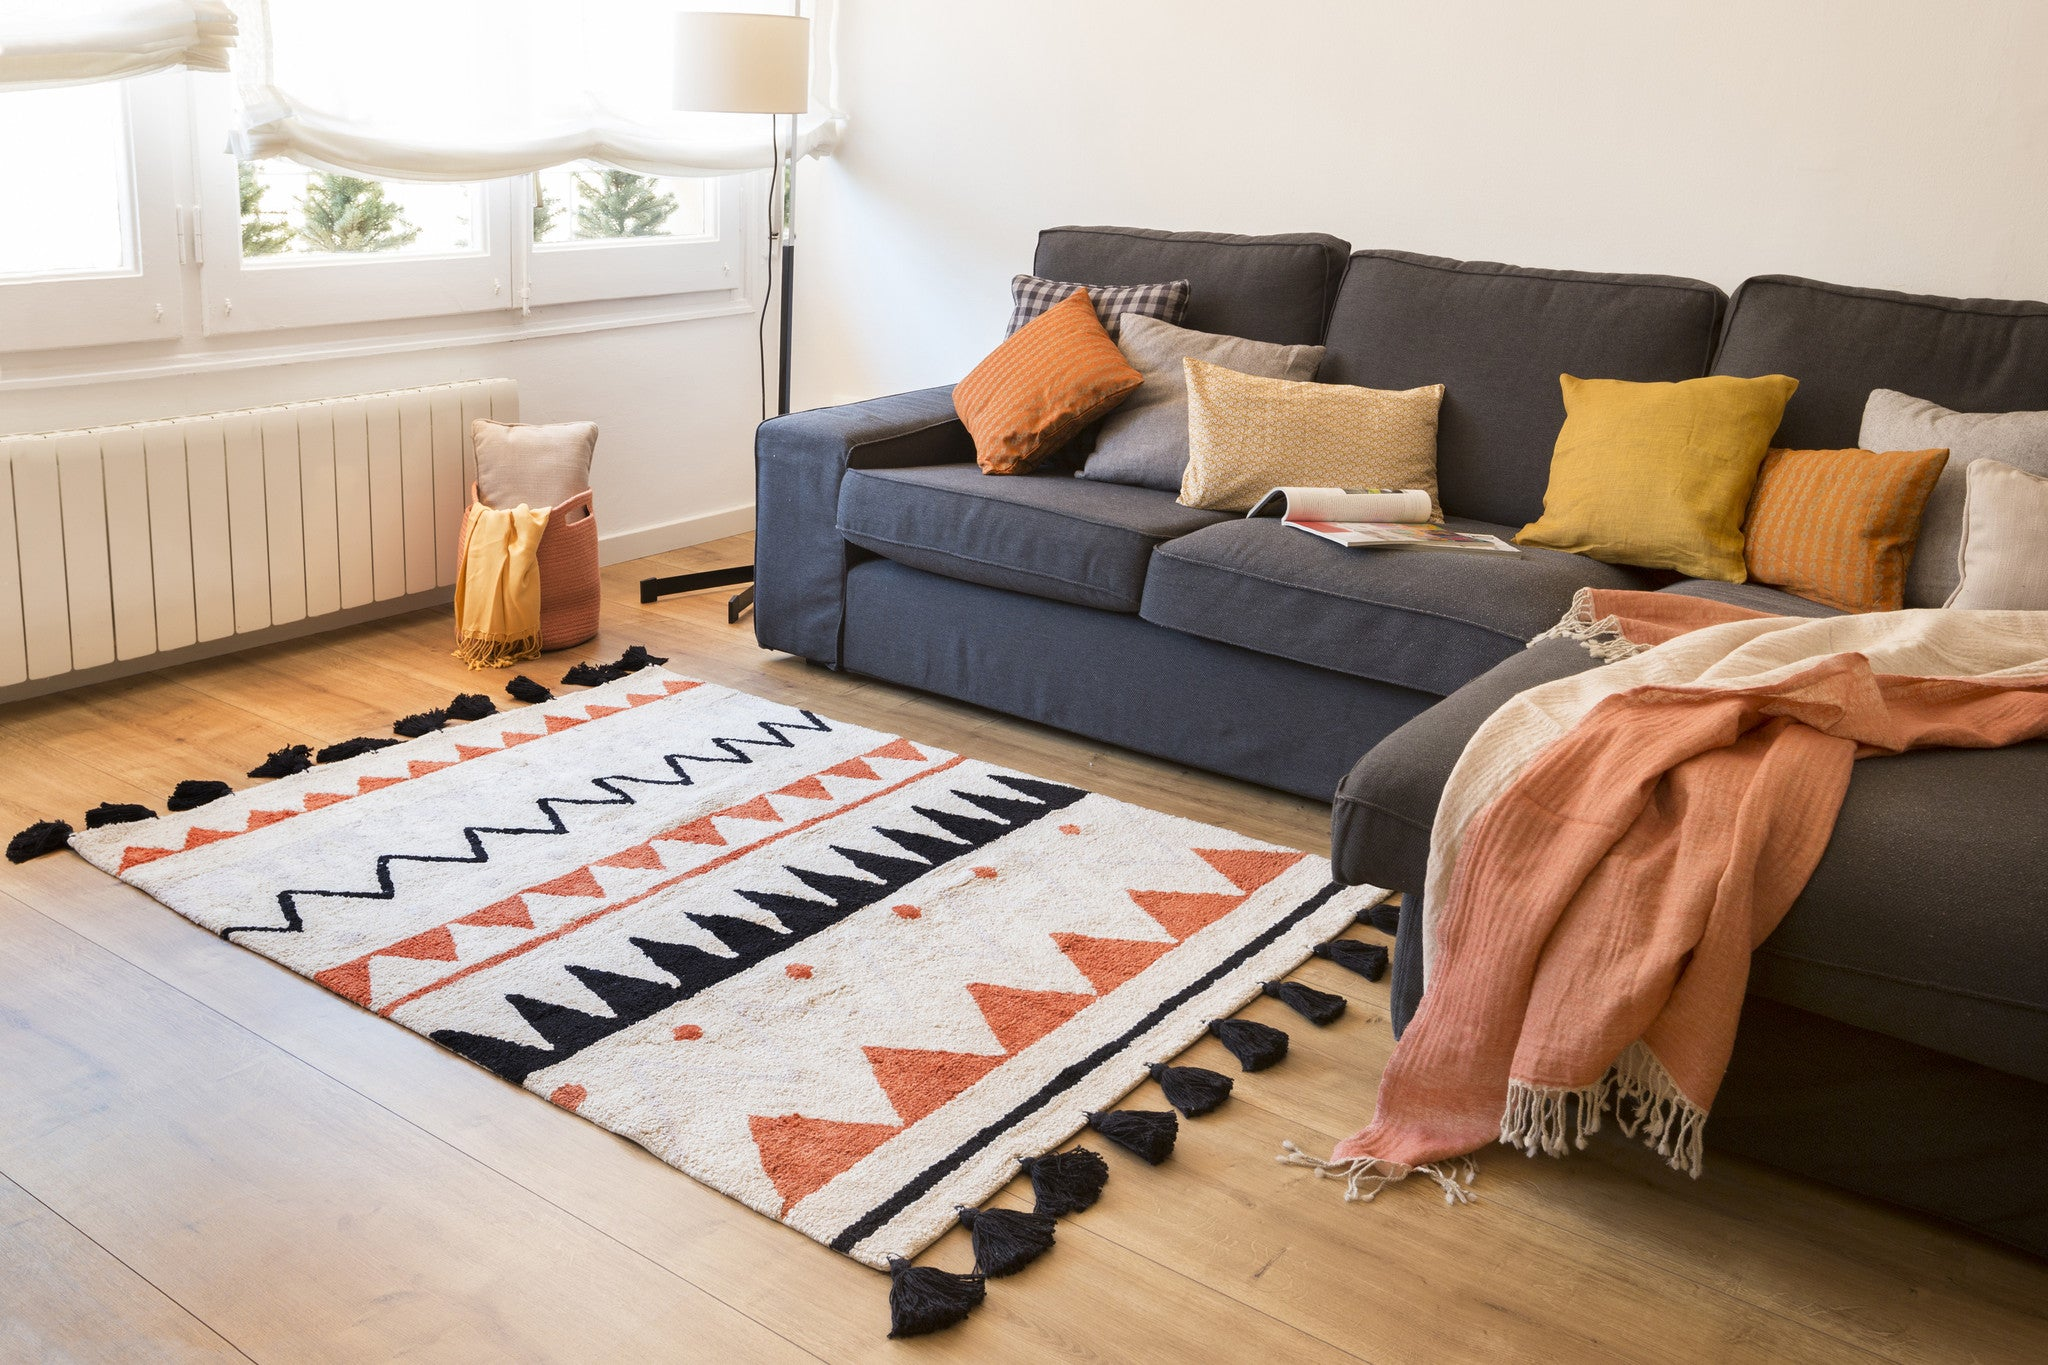 Machine Washable Rugs For Living Room Lorena Canals Washable Rugs And Cushions Amaclie Max